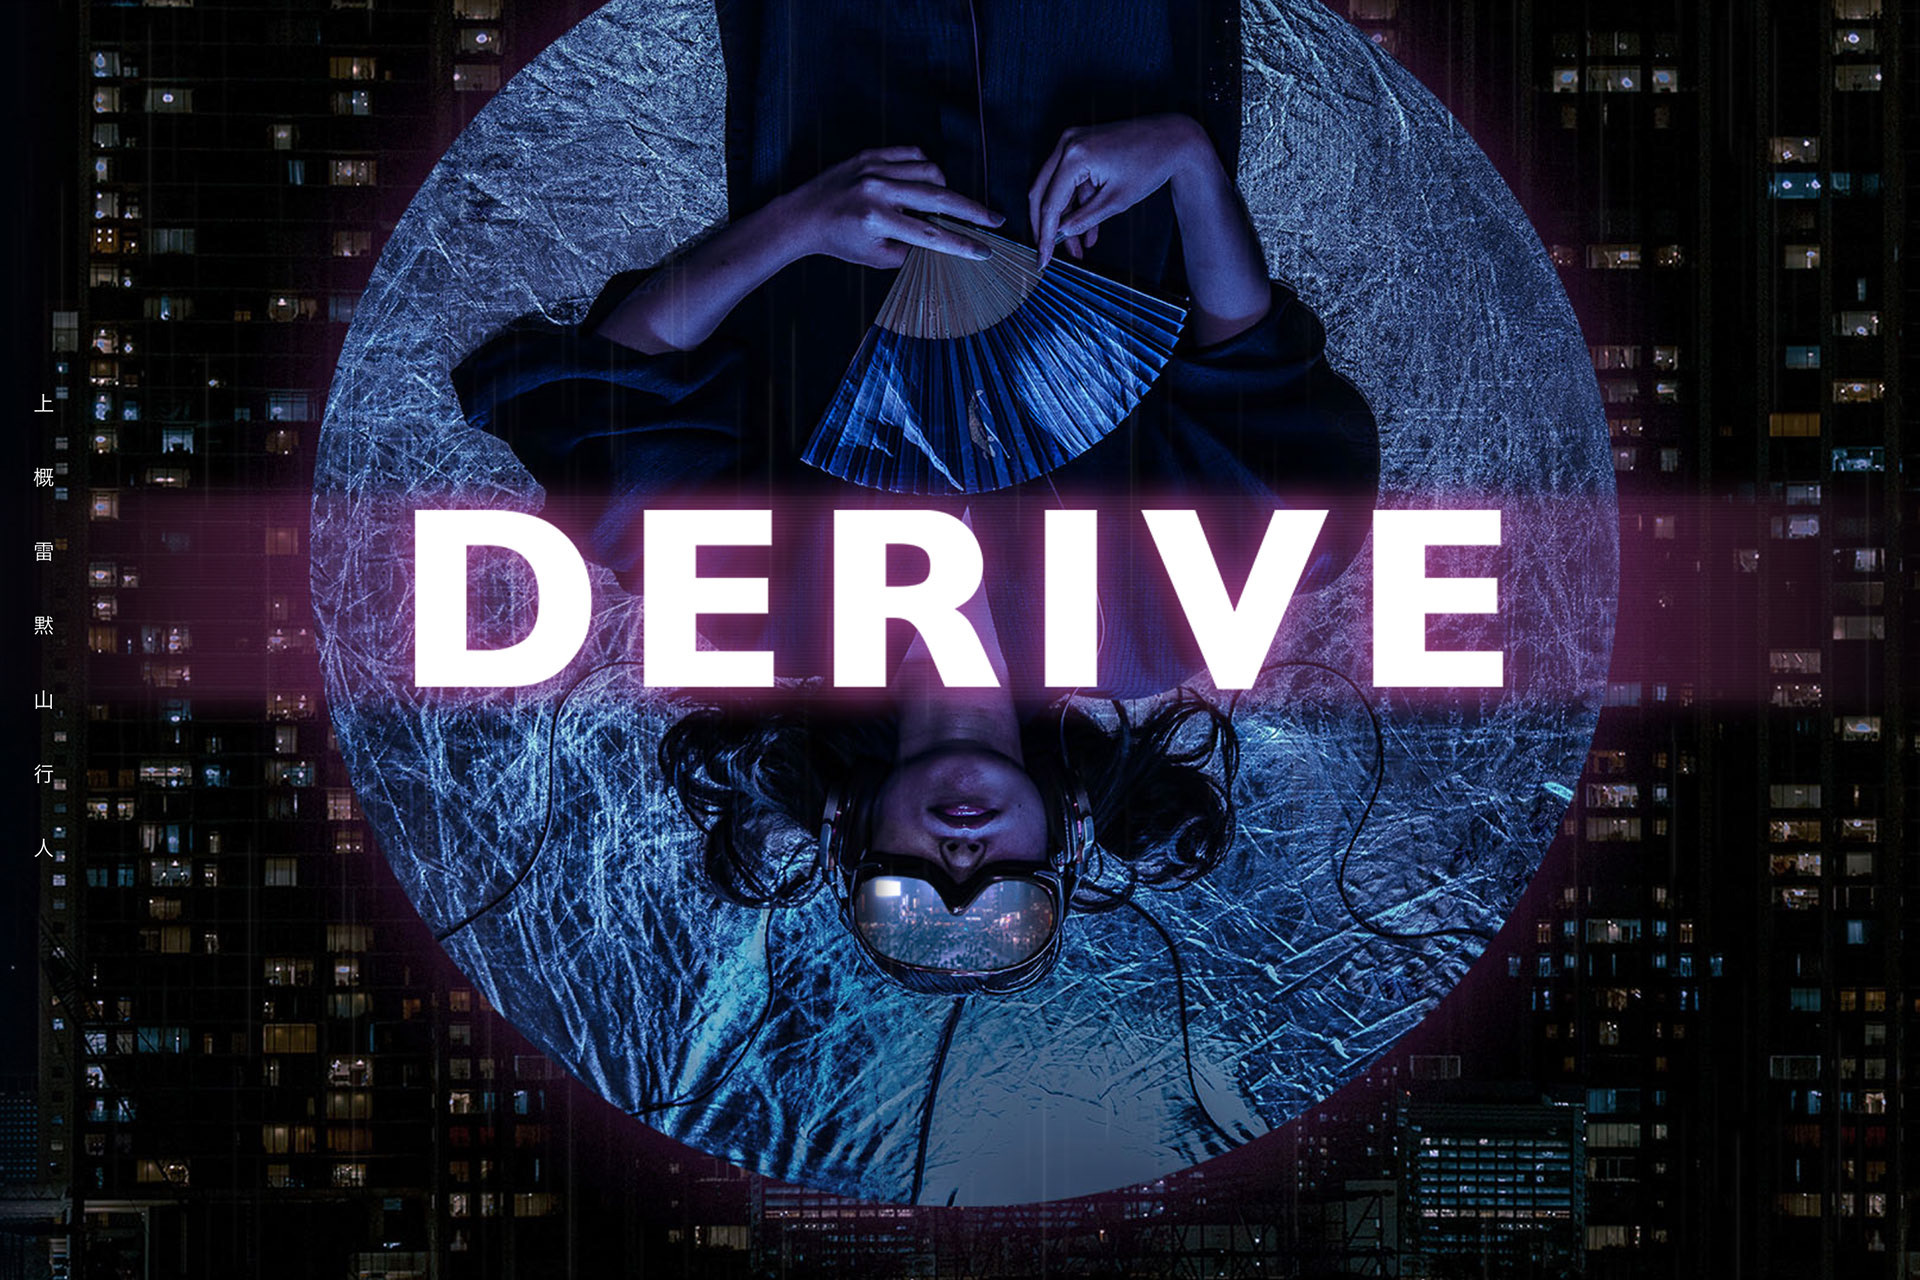 DERIVE: Official website